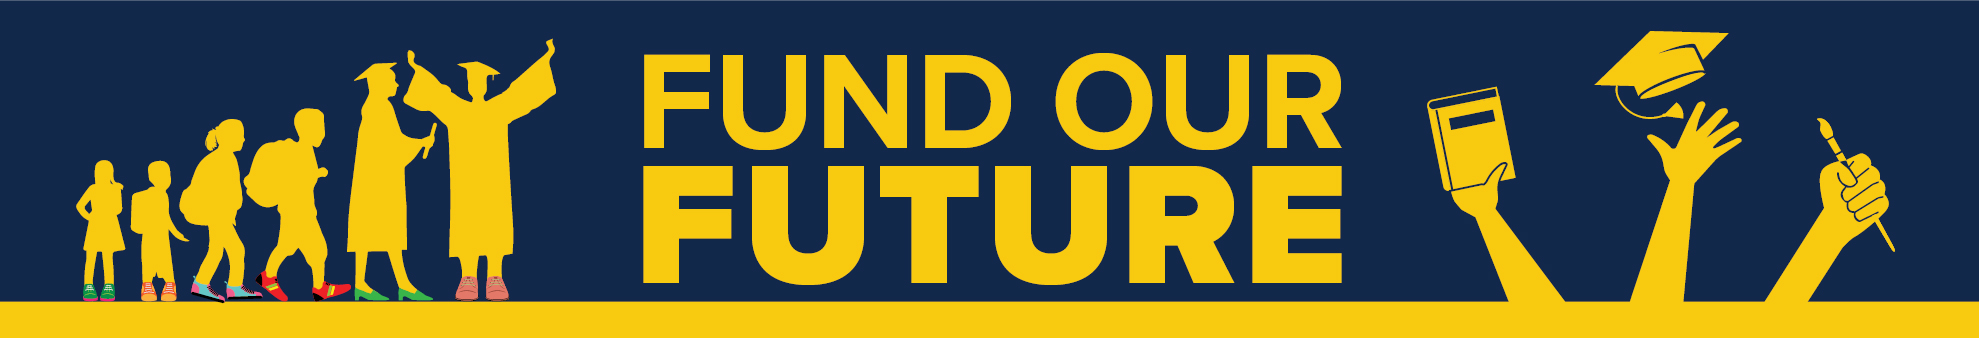 Fin_fundourfuture_coalition_logo_header_navy